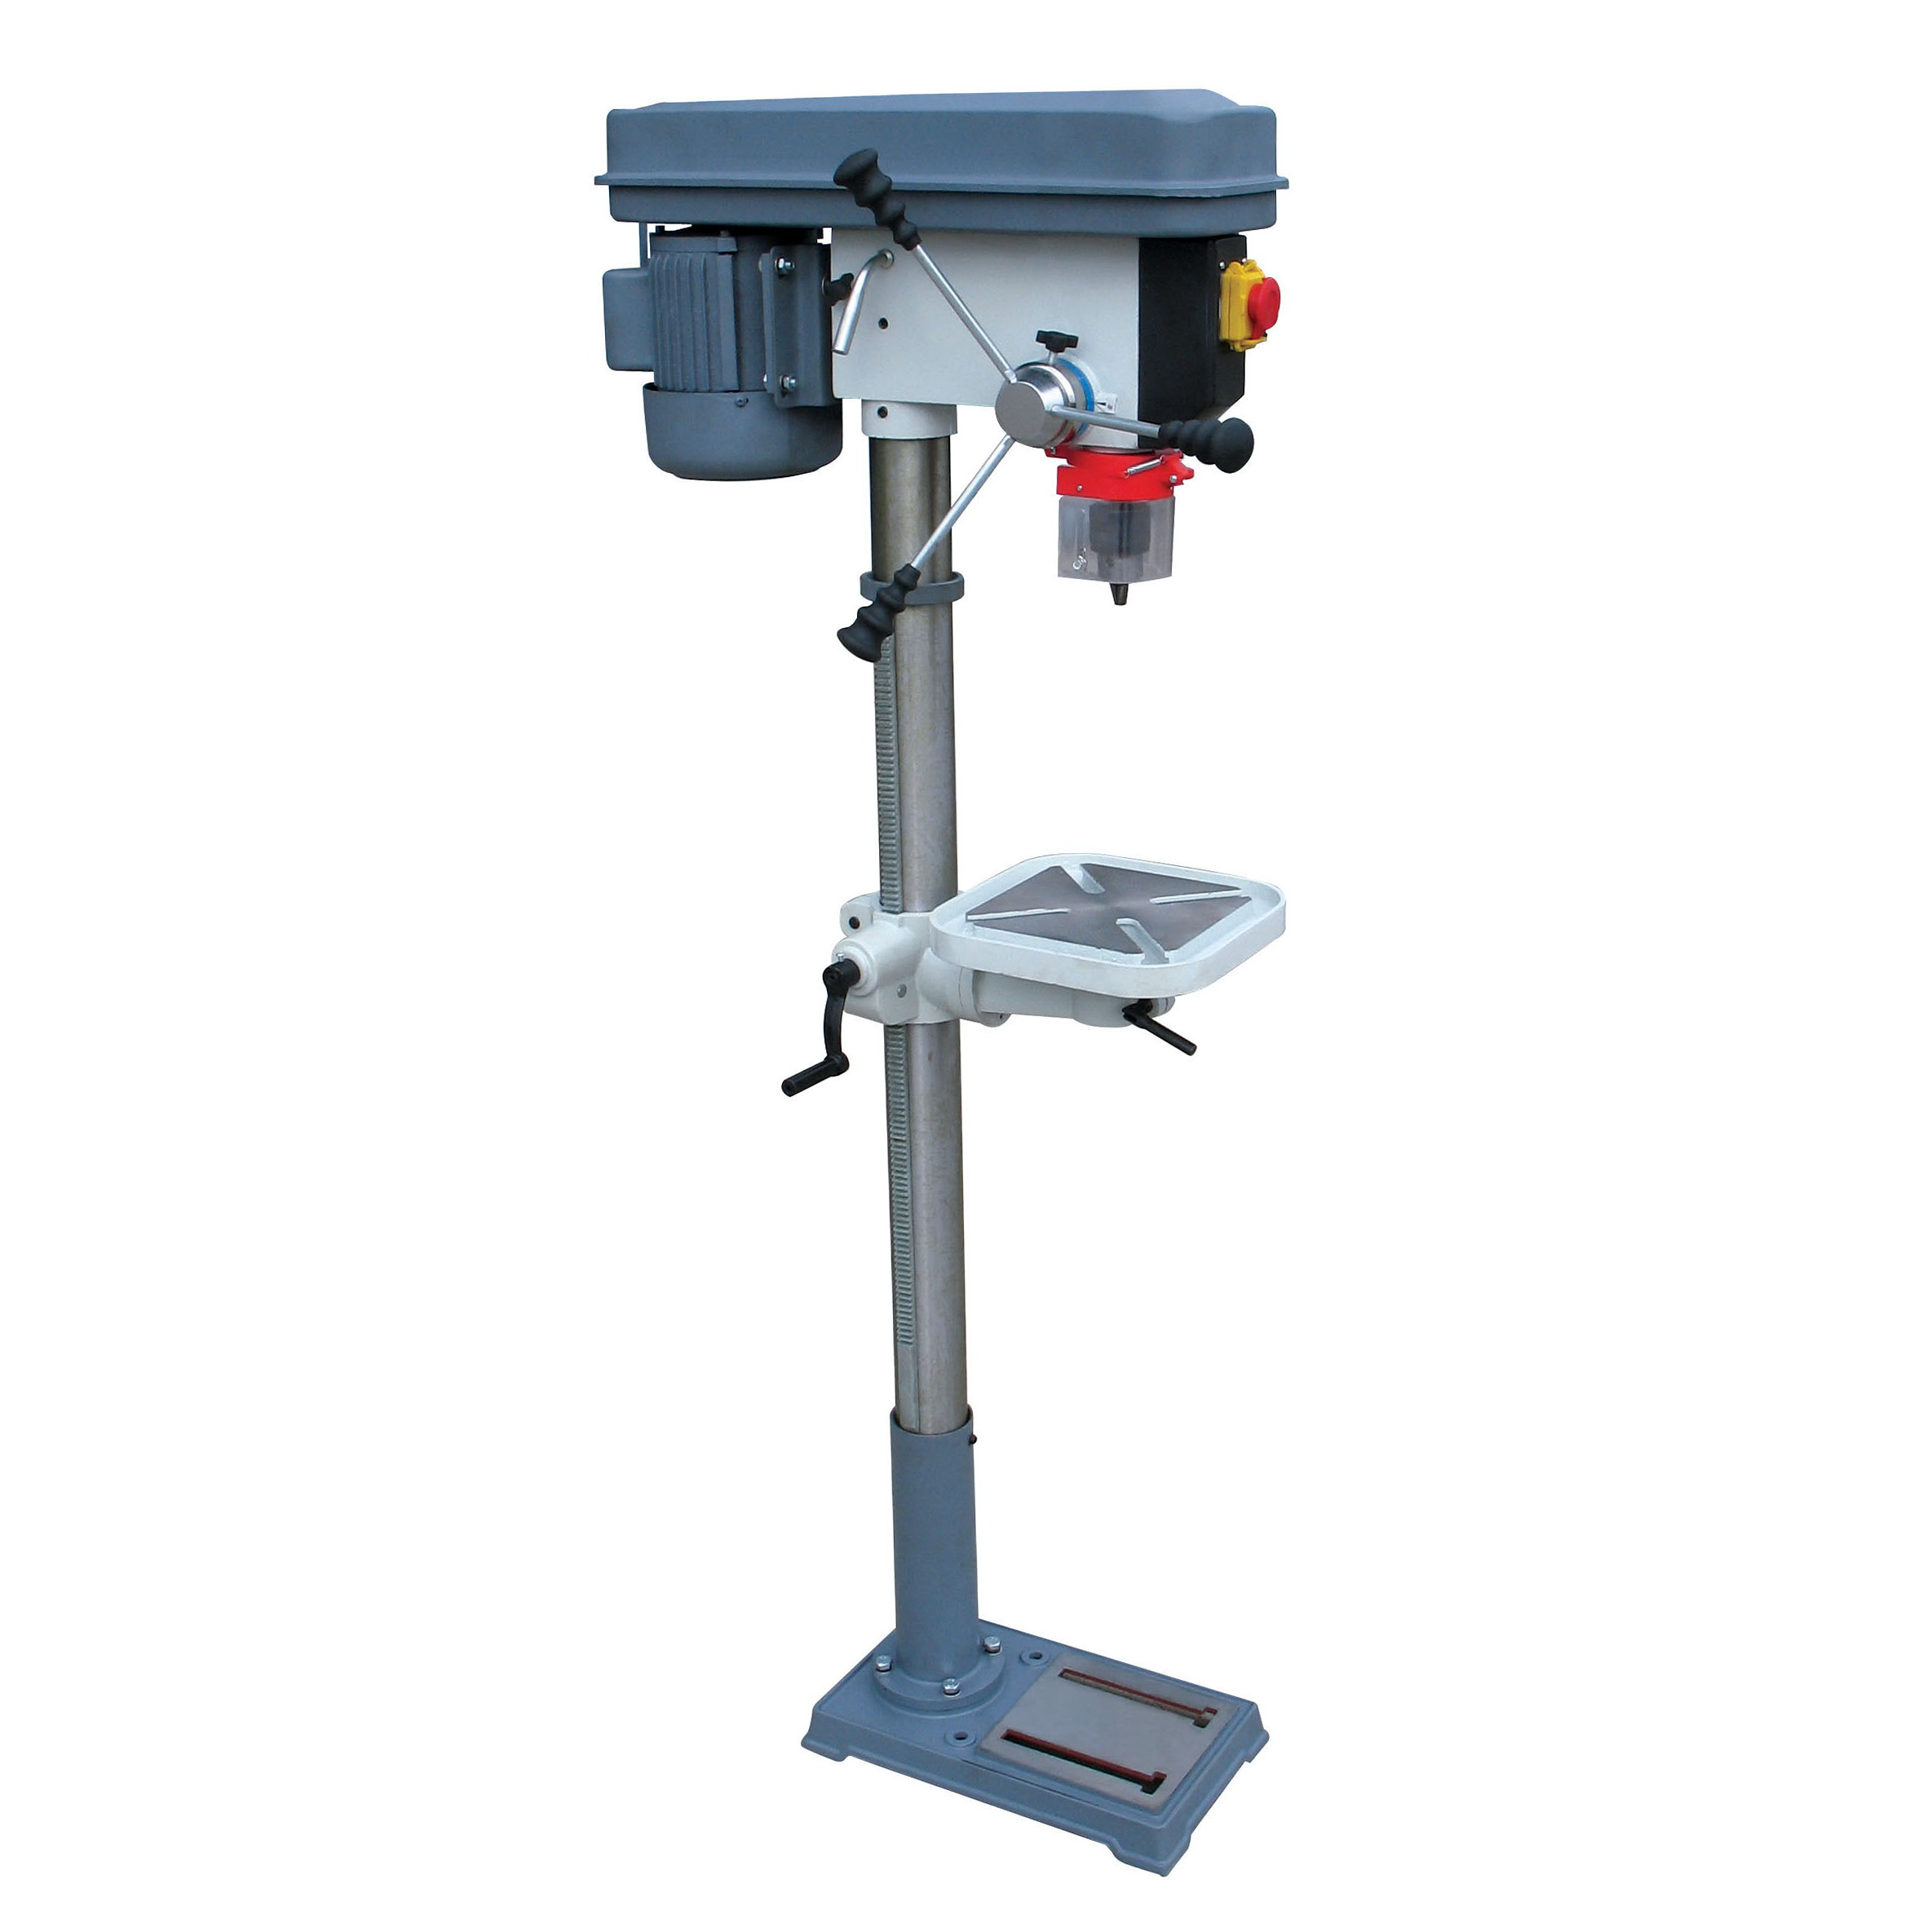 Delta Benchtop Drill Press Home Design Ideas